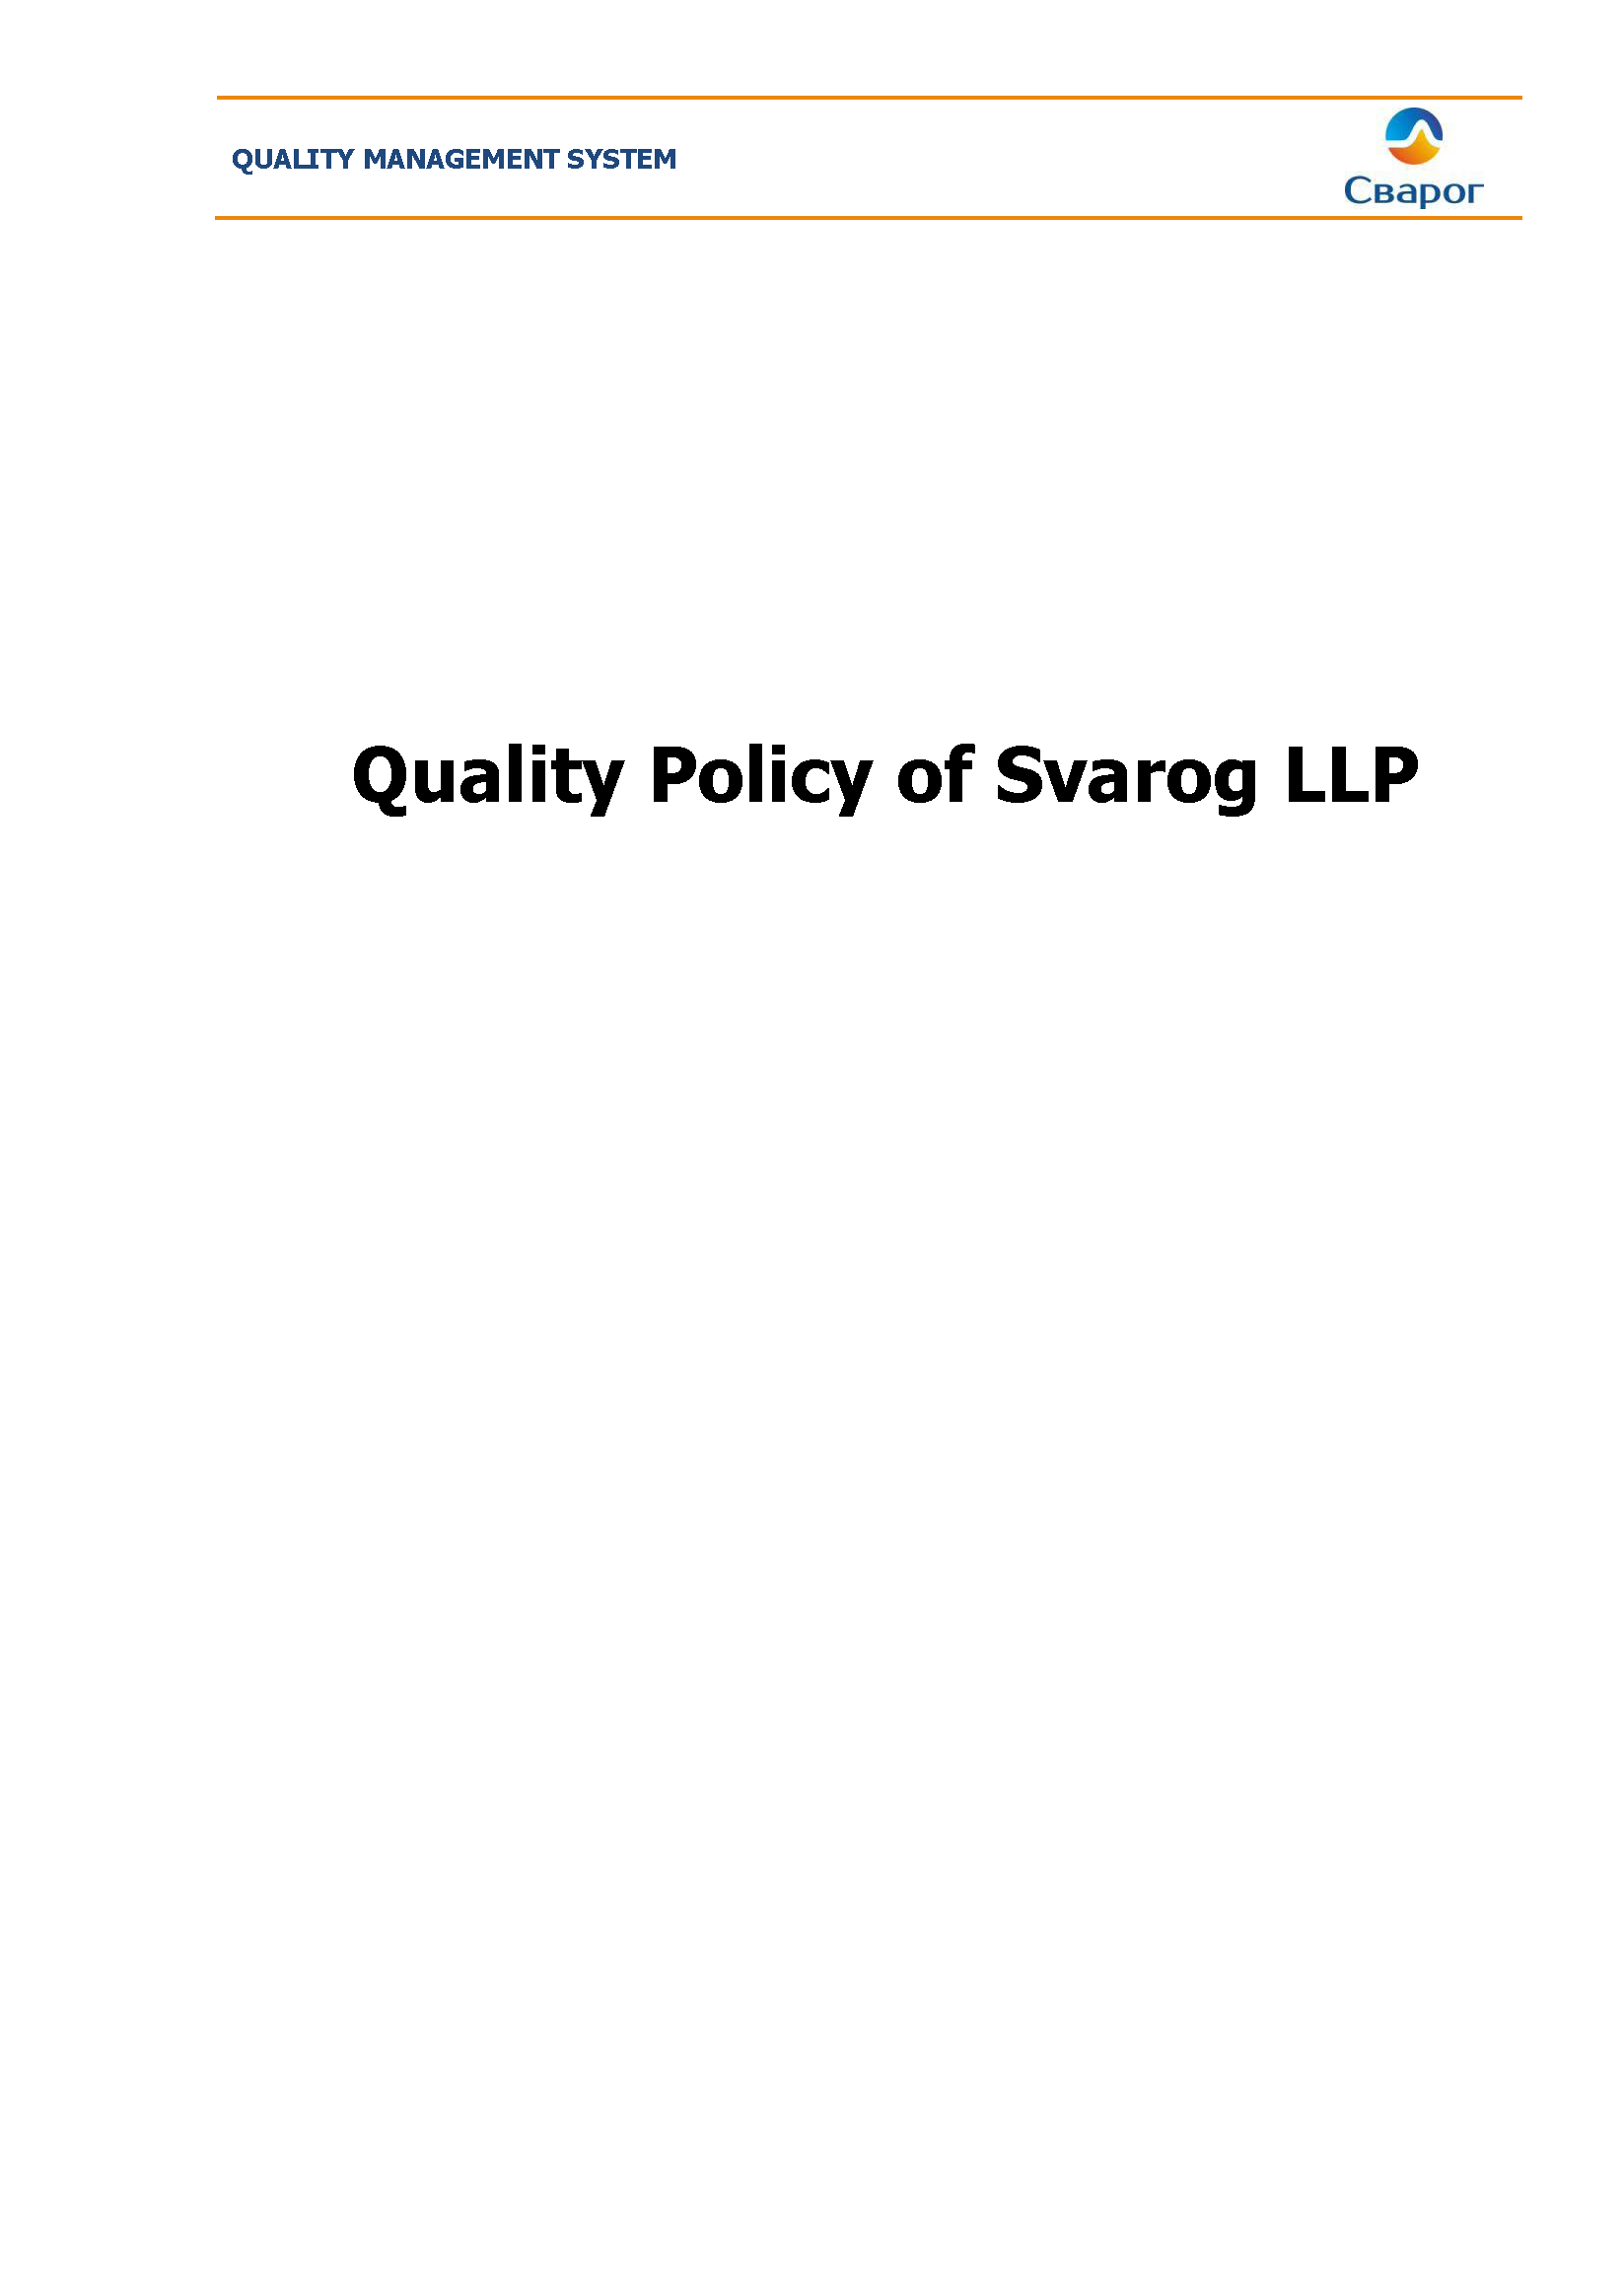 Quality Policy of Svarog LLP